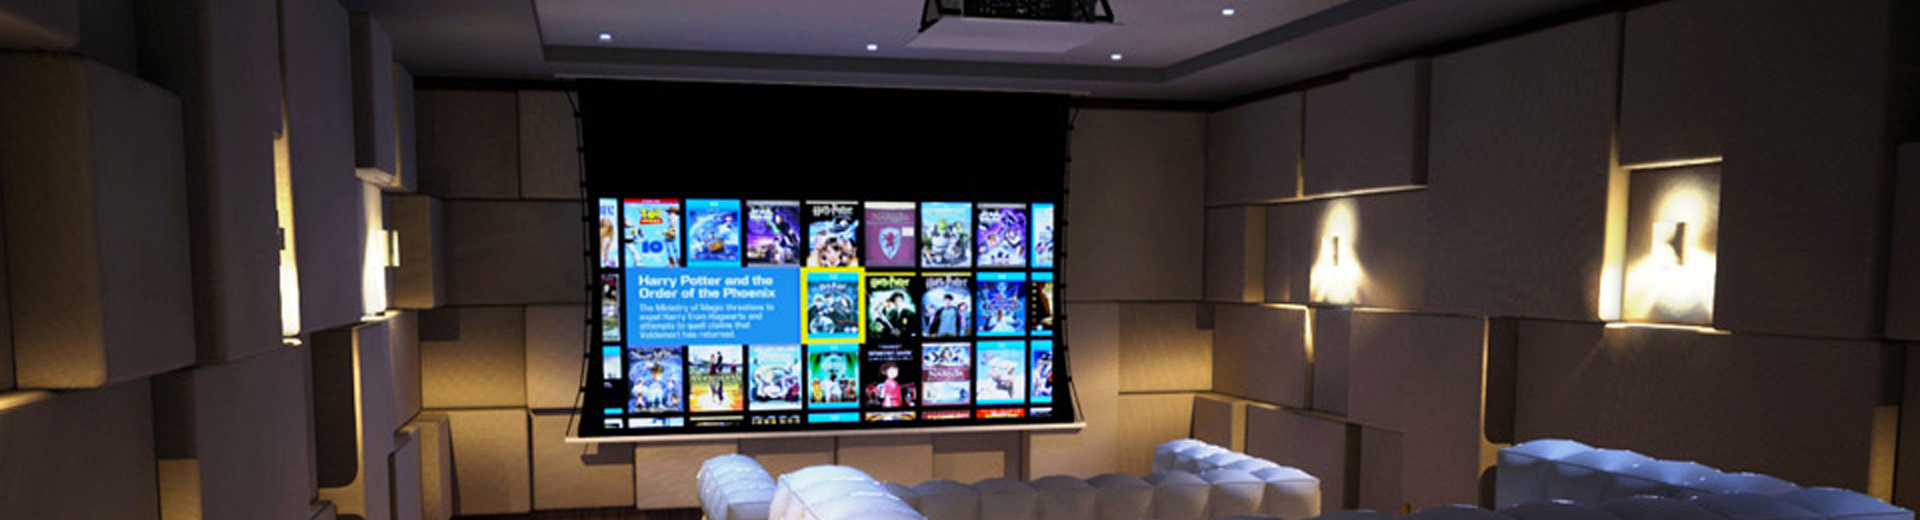 hometheatre-7